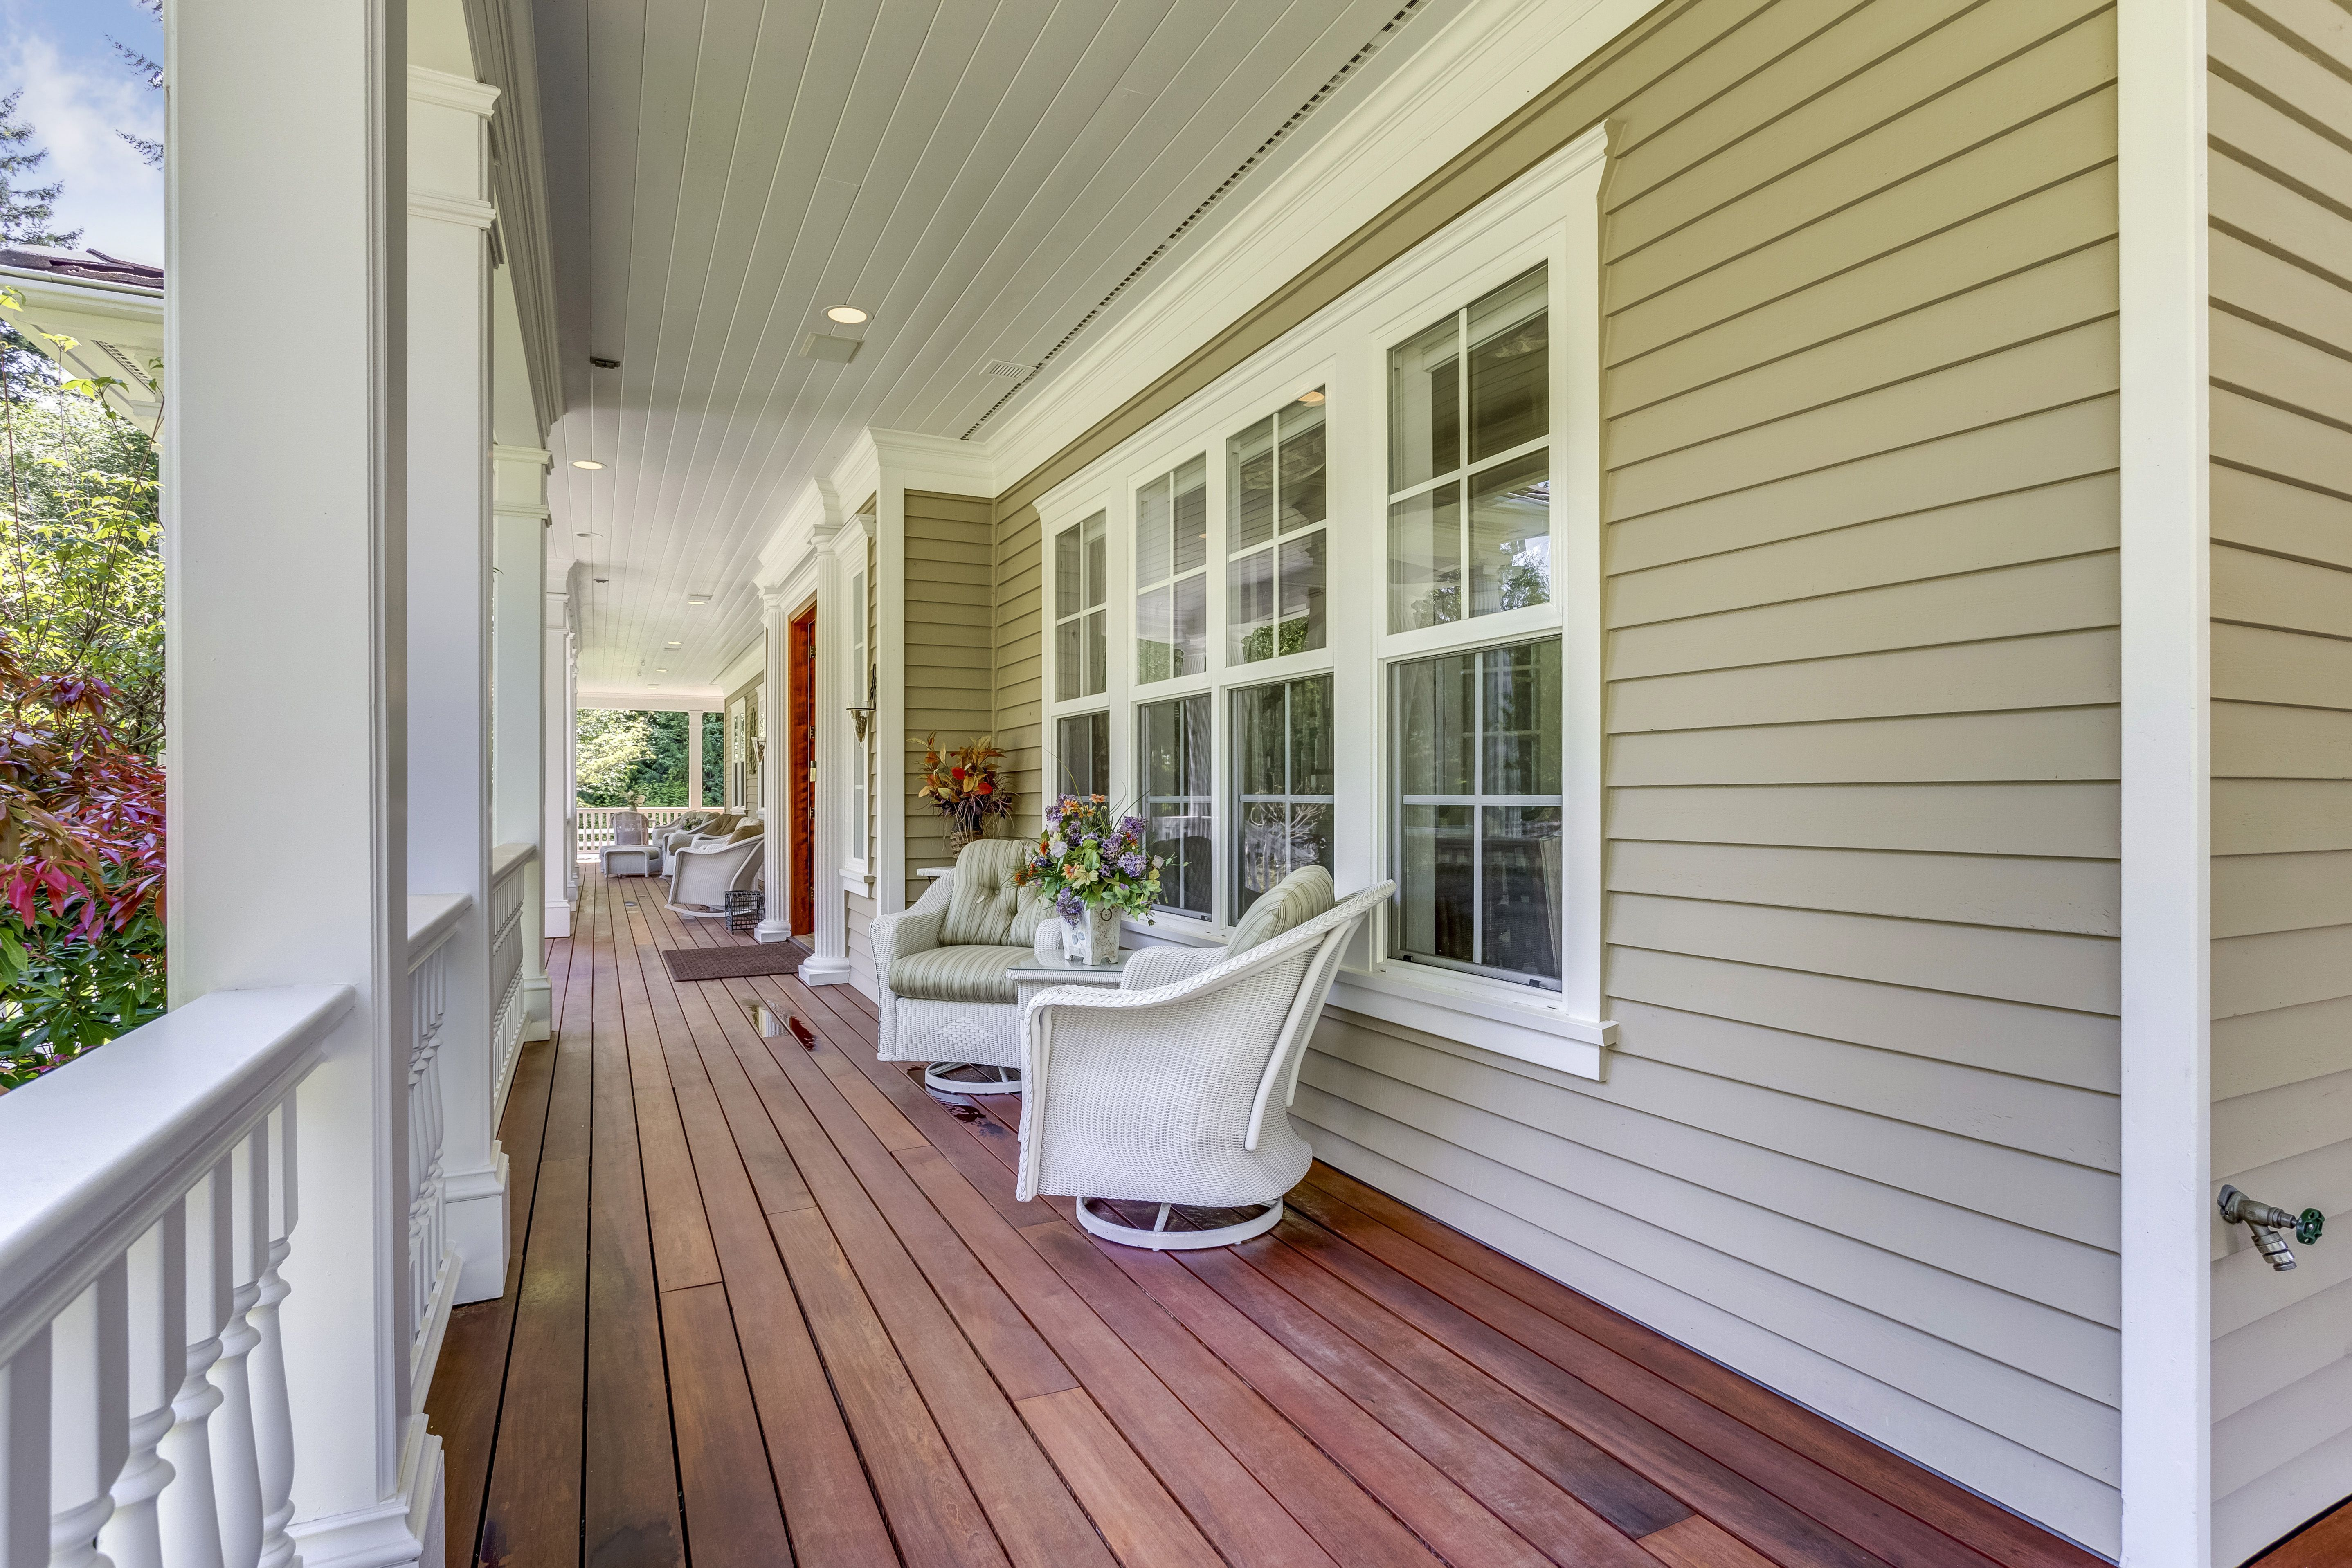 9 Outdoor Deck Designs, Types and Locations on ranch home carports, ranch home pavers, ranch home pools, ranch home sunroom addition, ranch home doors, ranch home vinyl siding, ranch home stairs, ranch home roofs, ranch home floors, ranch home paint, ranch home porch, ranch home ceilings, ranch home lighting, ranch home wood, ranch home basements, ranch home building kits, ranch home fireplaces, raised ranch decks, ranch home interiors, ranch home garage,